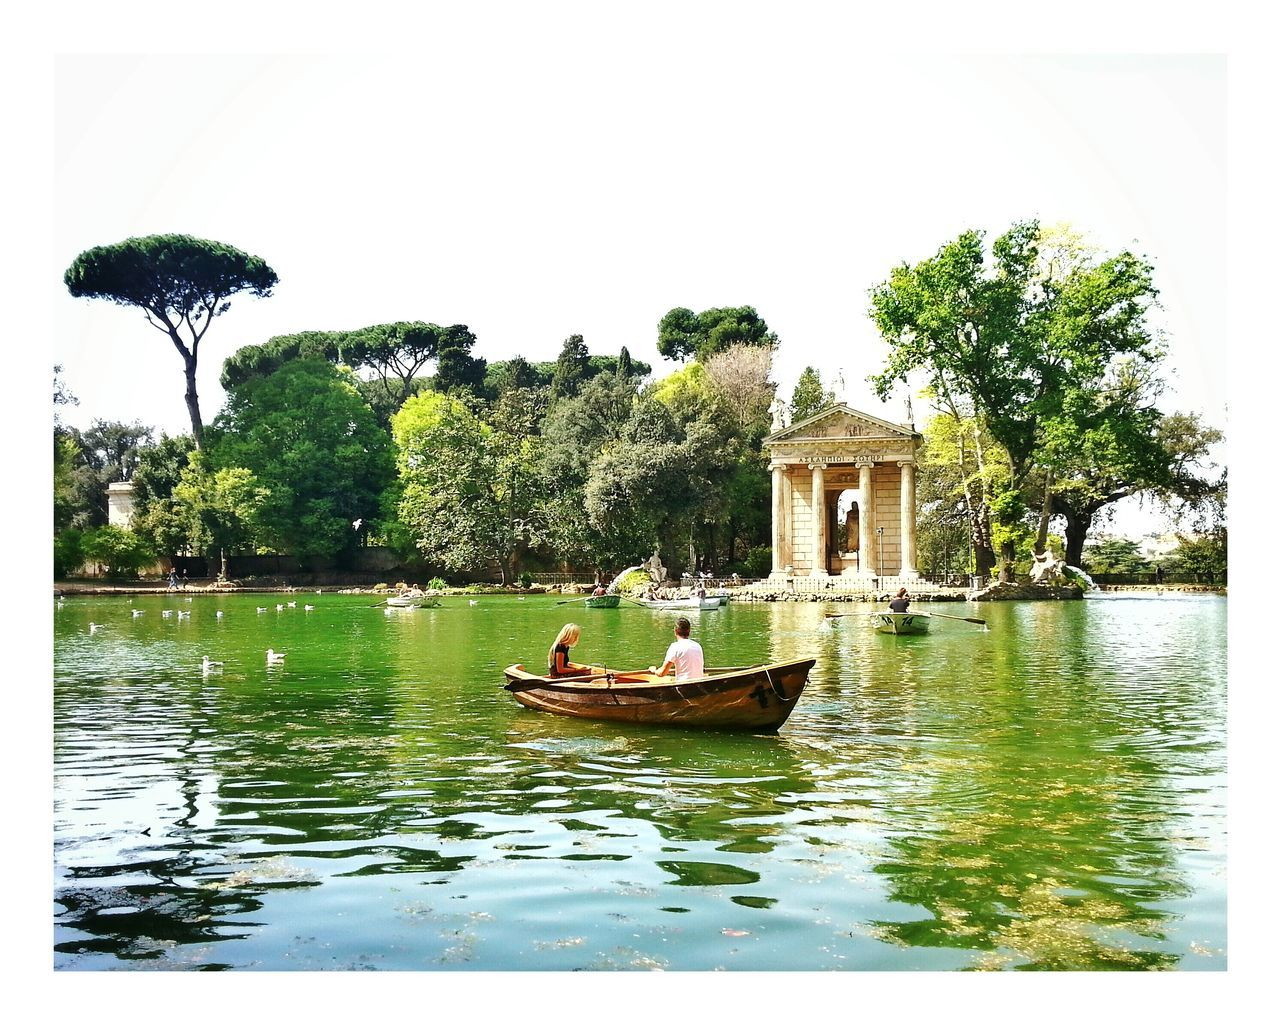 Tourists In Rome Rome By Boat Villa Borghese Park Springtime Spring In Rome Showcase April Turisti a Roma Spring Monument Green